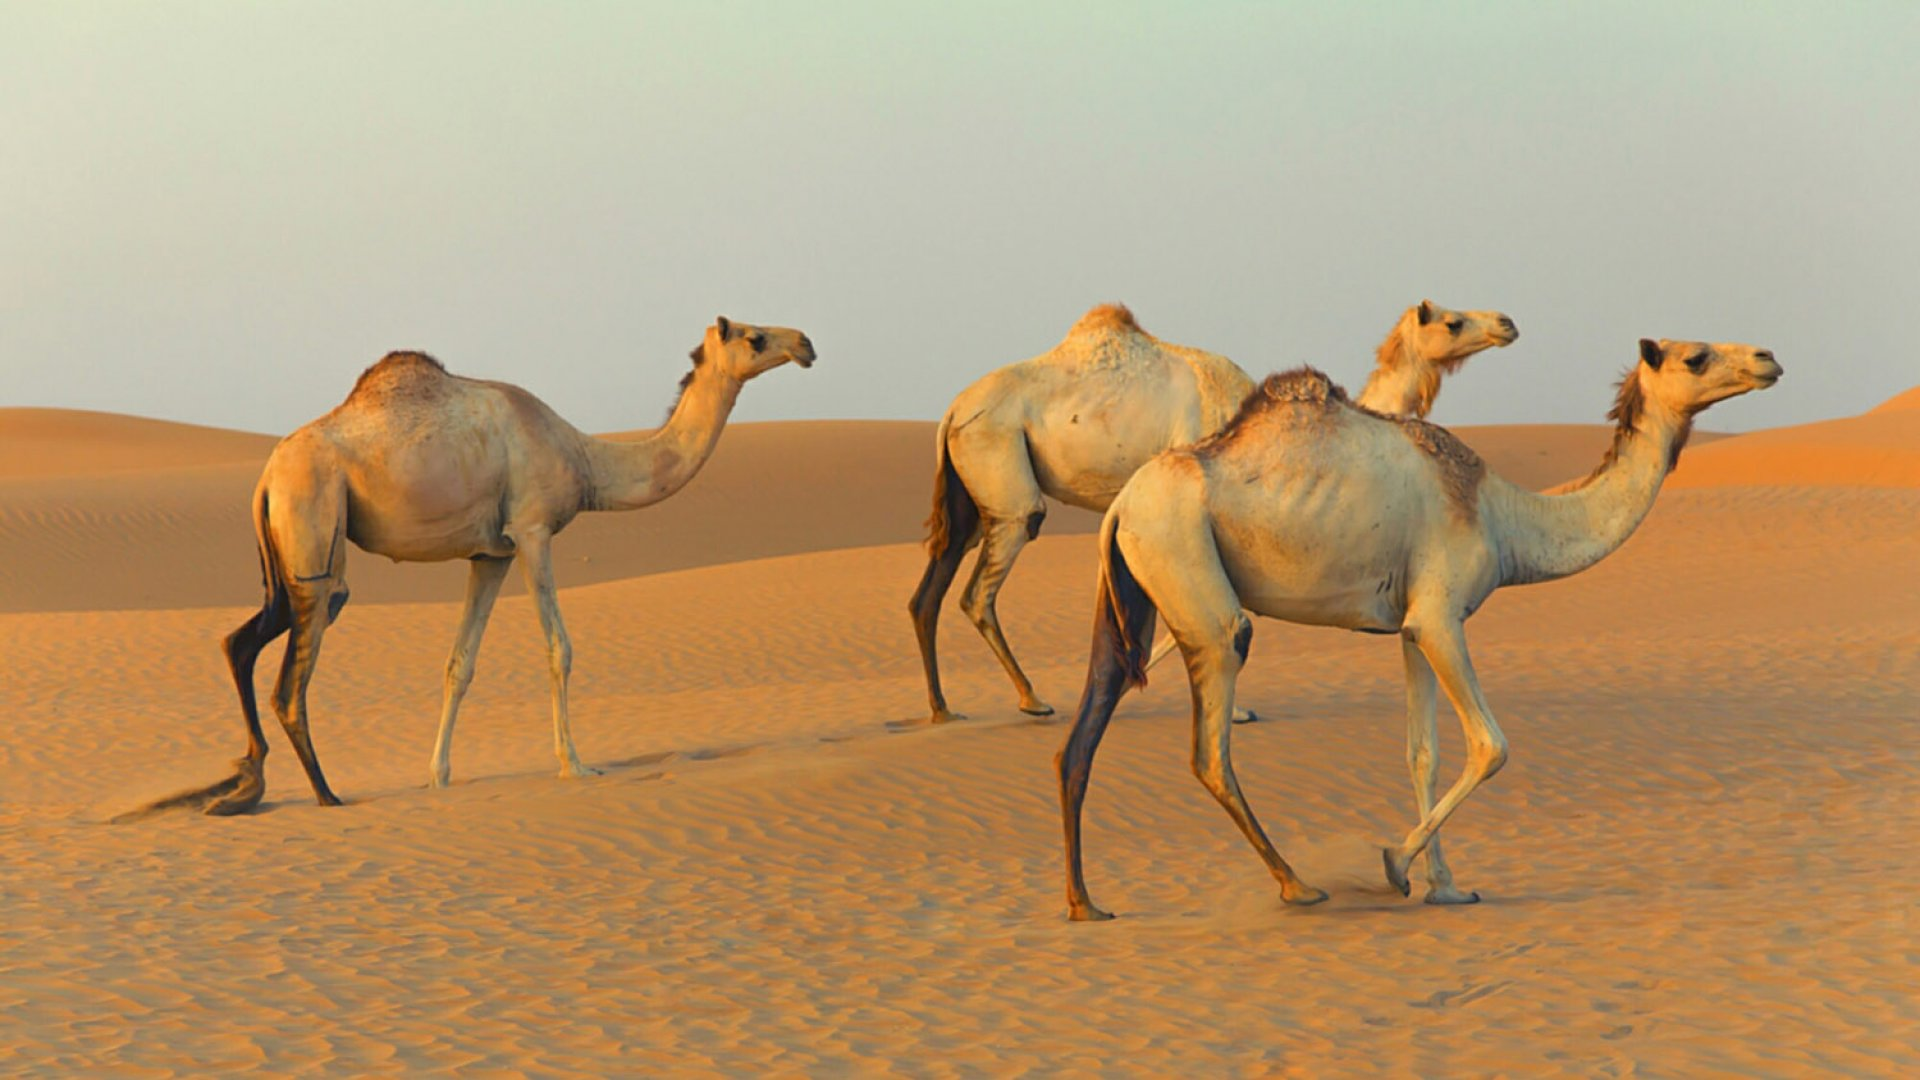 Why Startups Should Aim to Be 'Camels' Rather Than 'Unicorns'